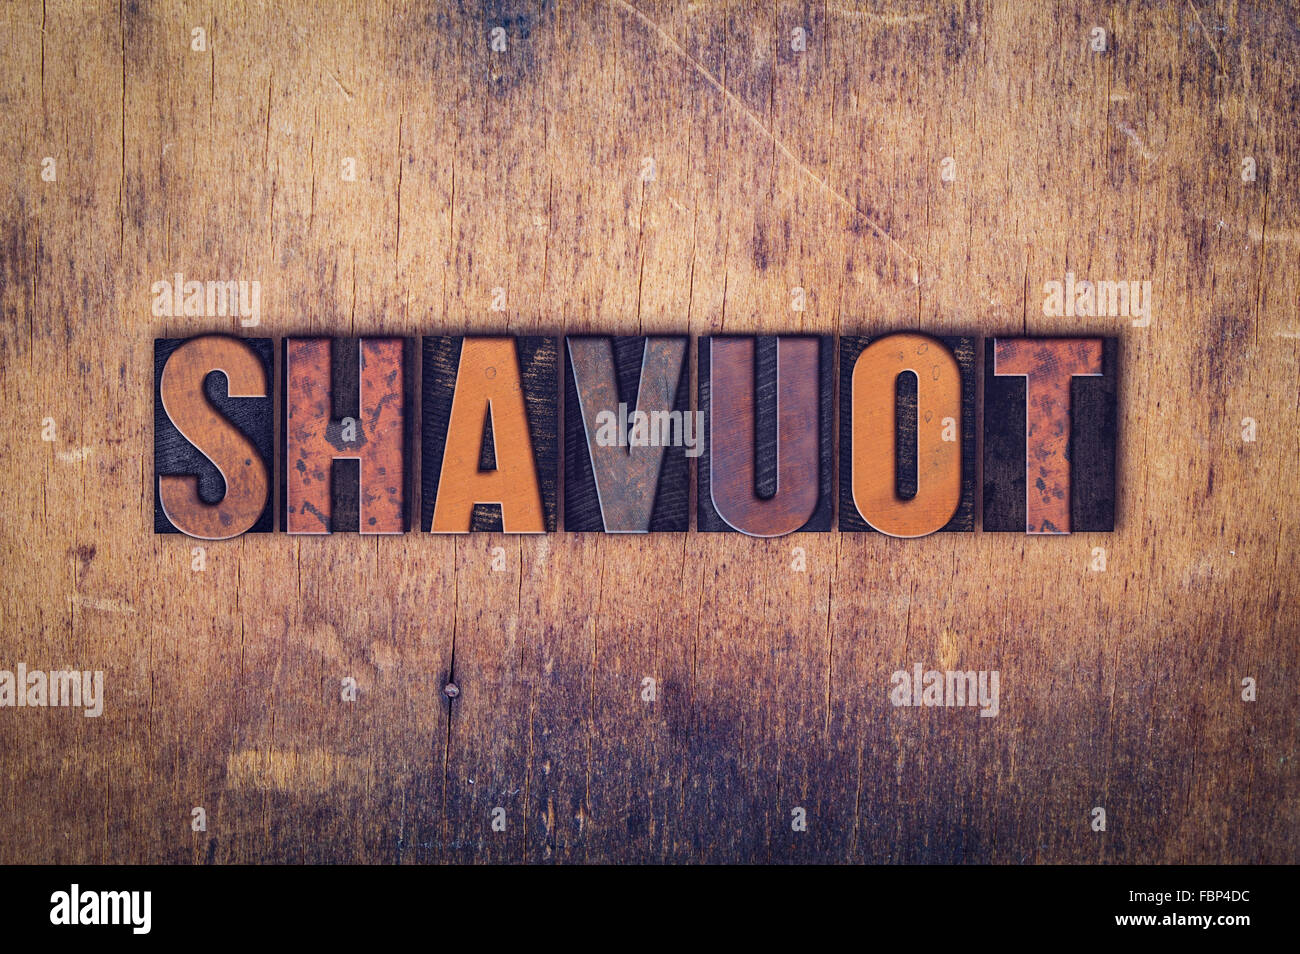 The word 'Shavuot' written in dirty vintage letterpress type on a aged wooden background. - Stock Image